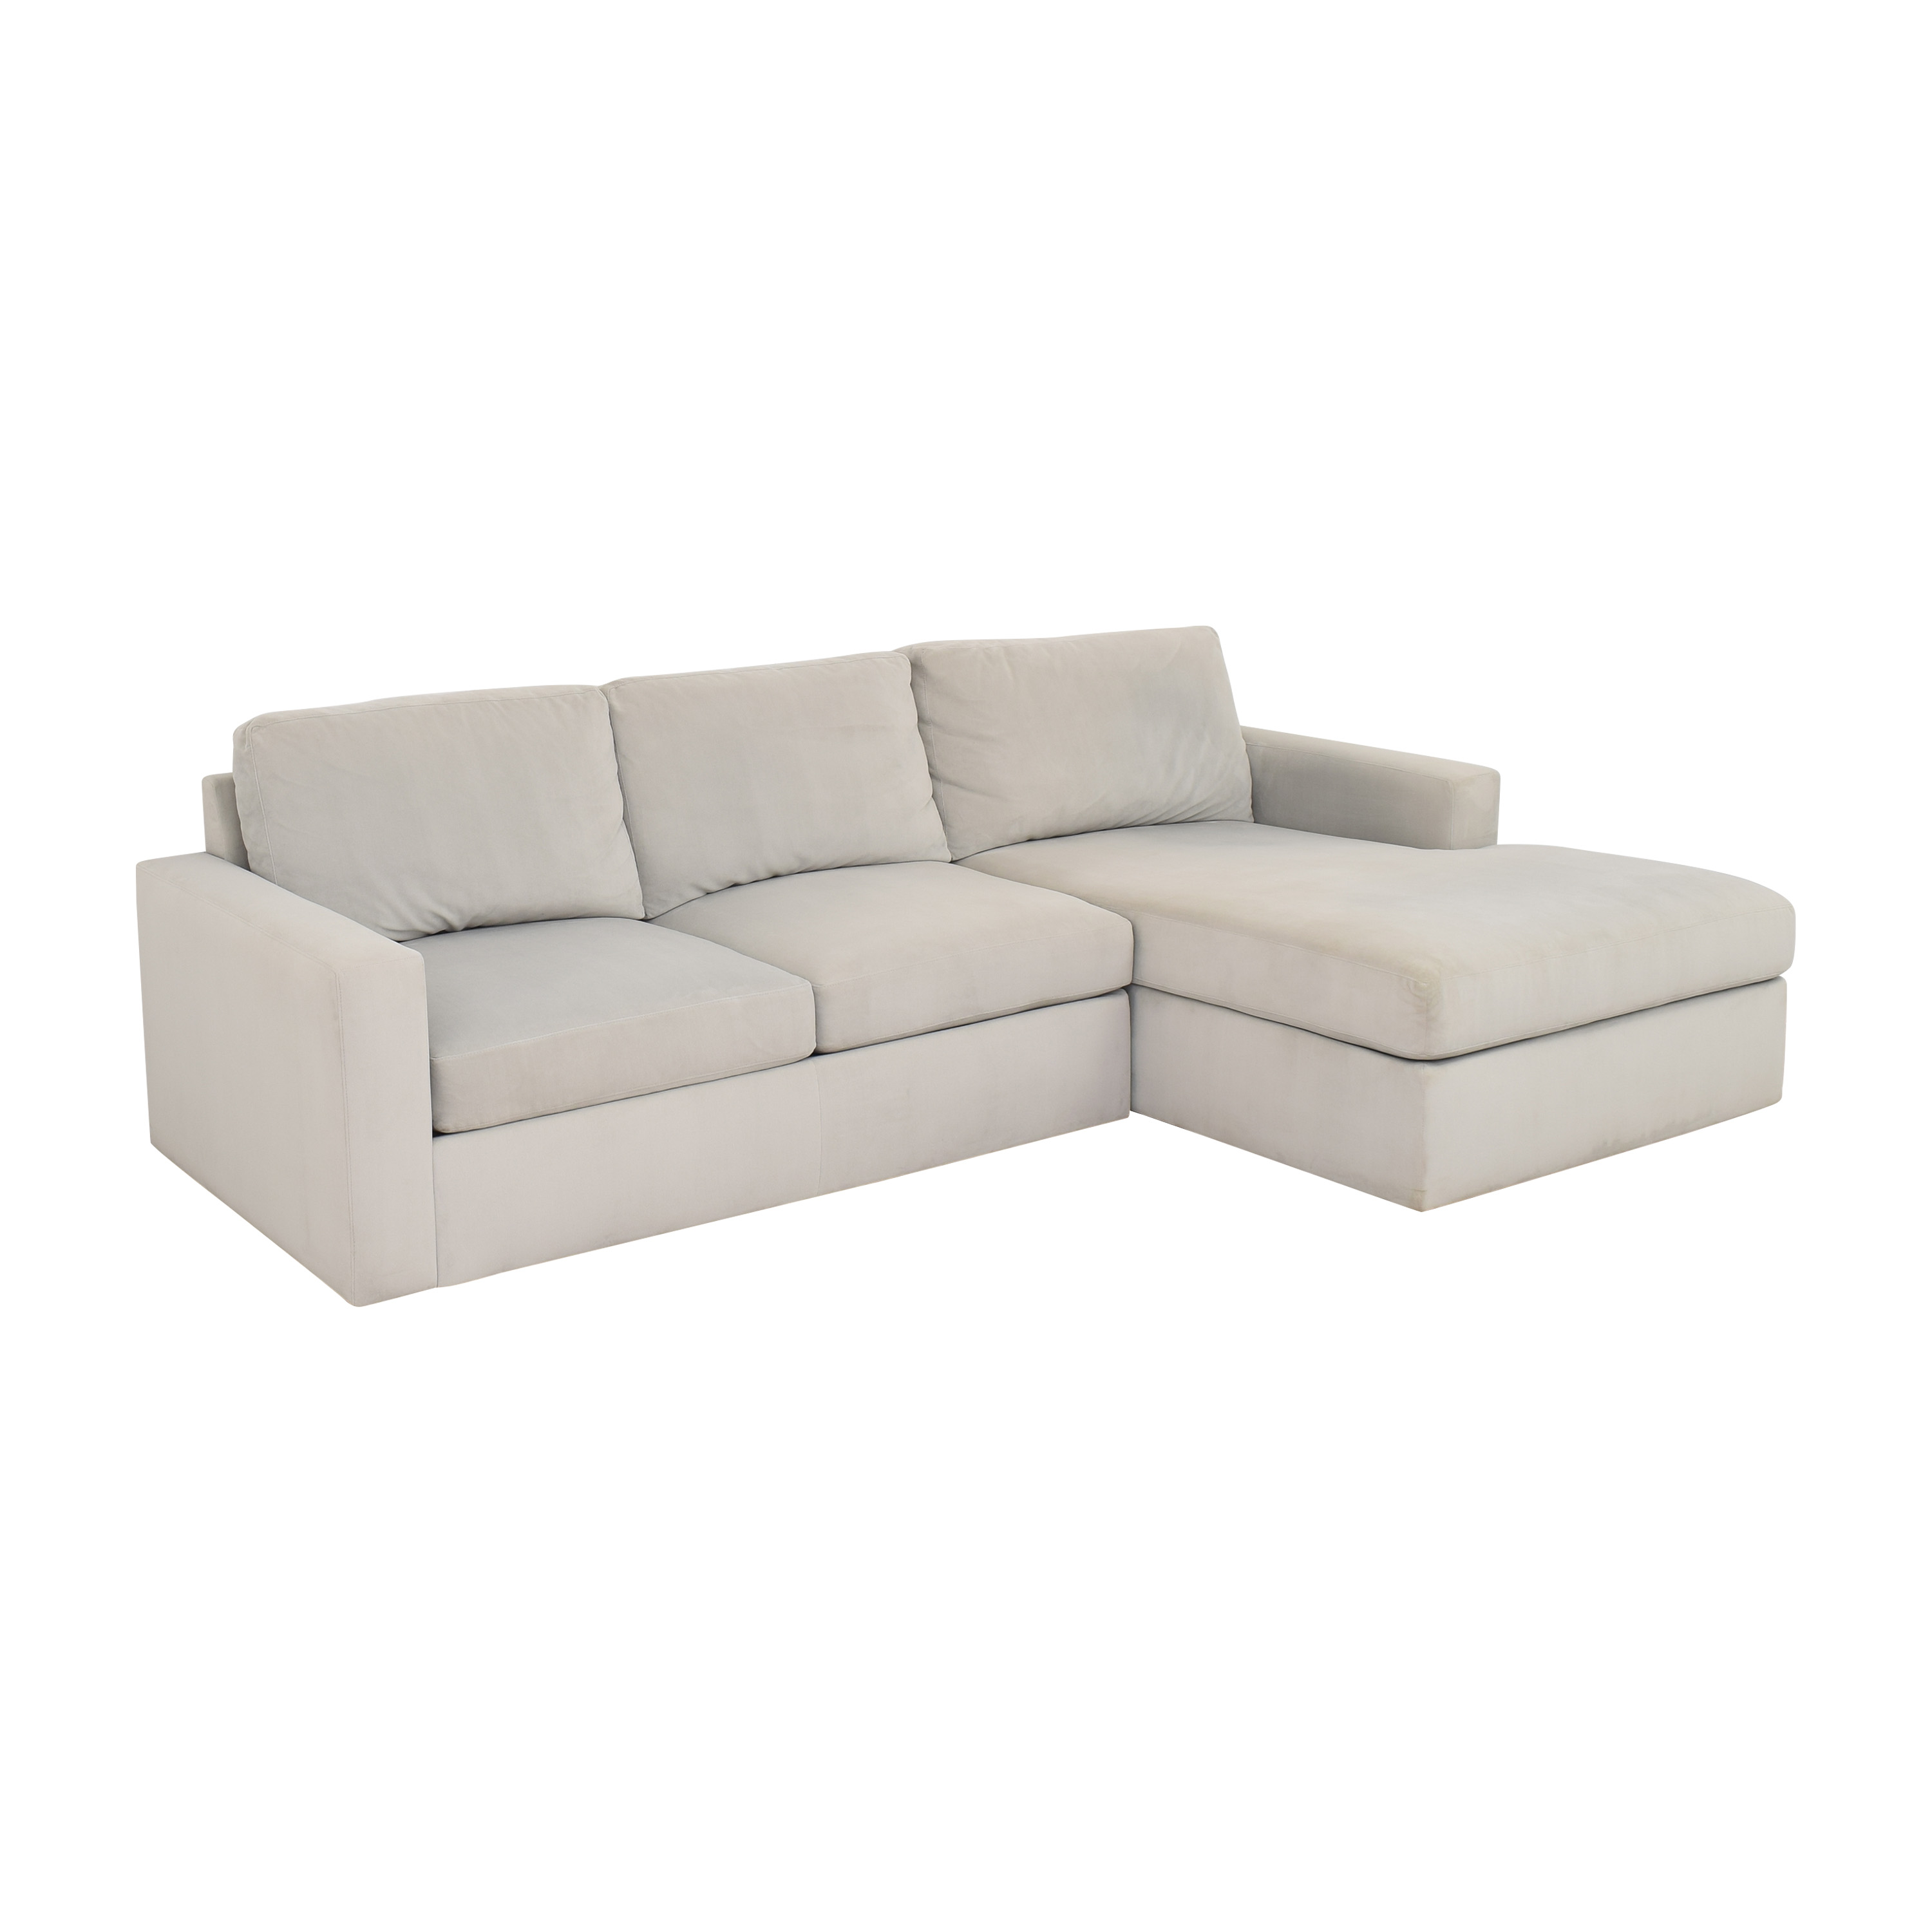 Room & Board Room & Board Modern Sectional Sofa with Chaise on sale